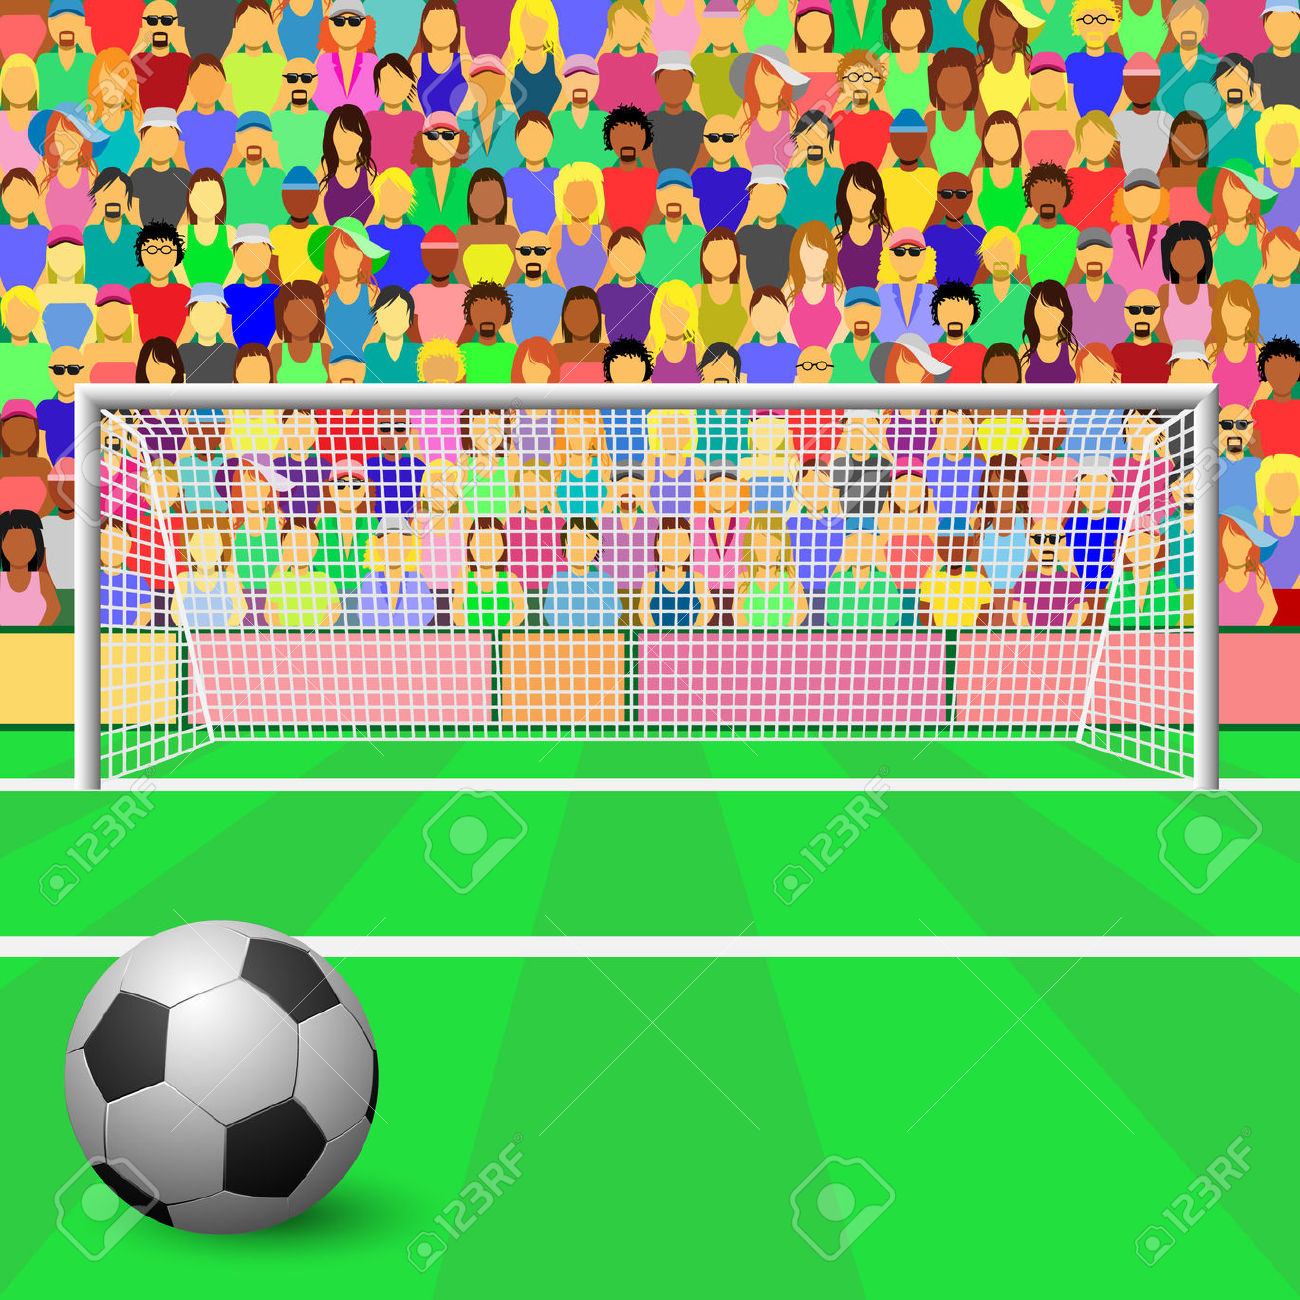 Football crowds clipart.